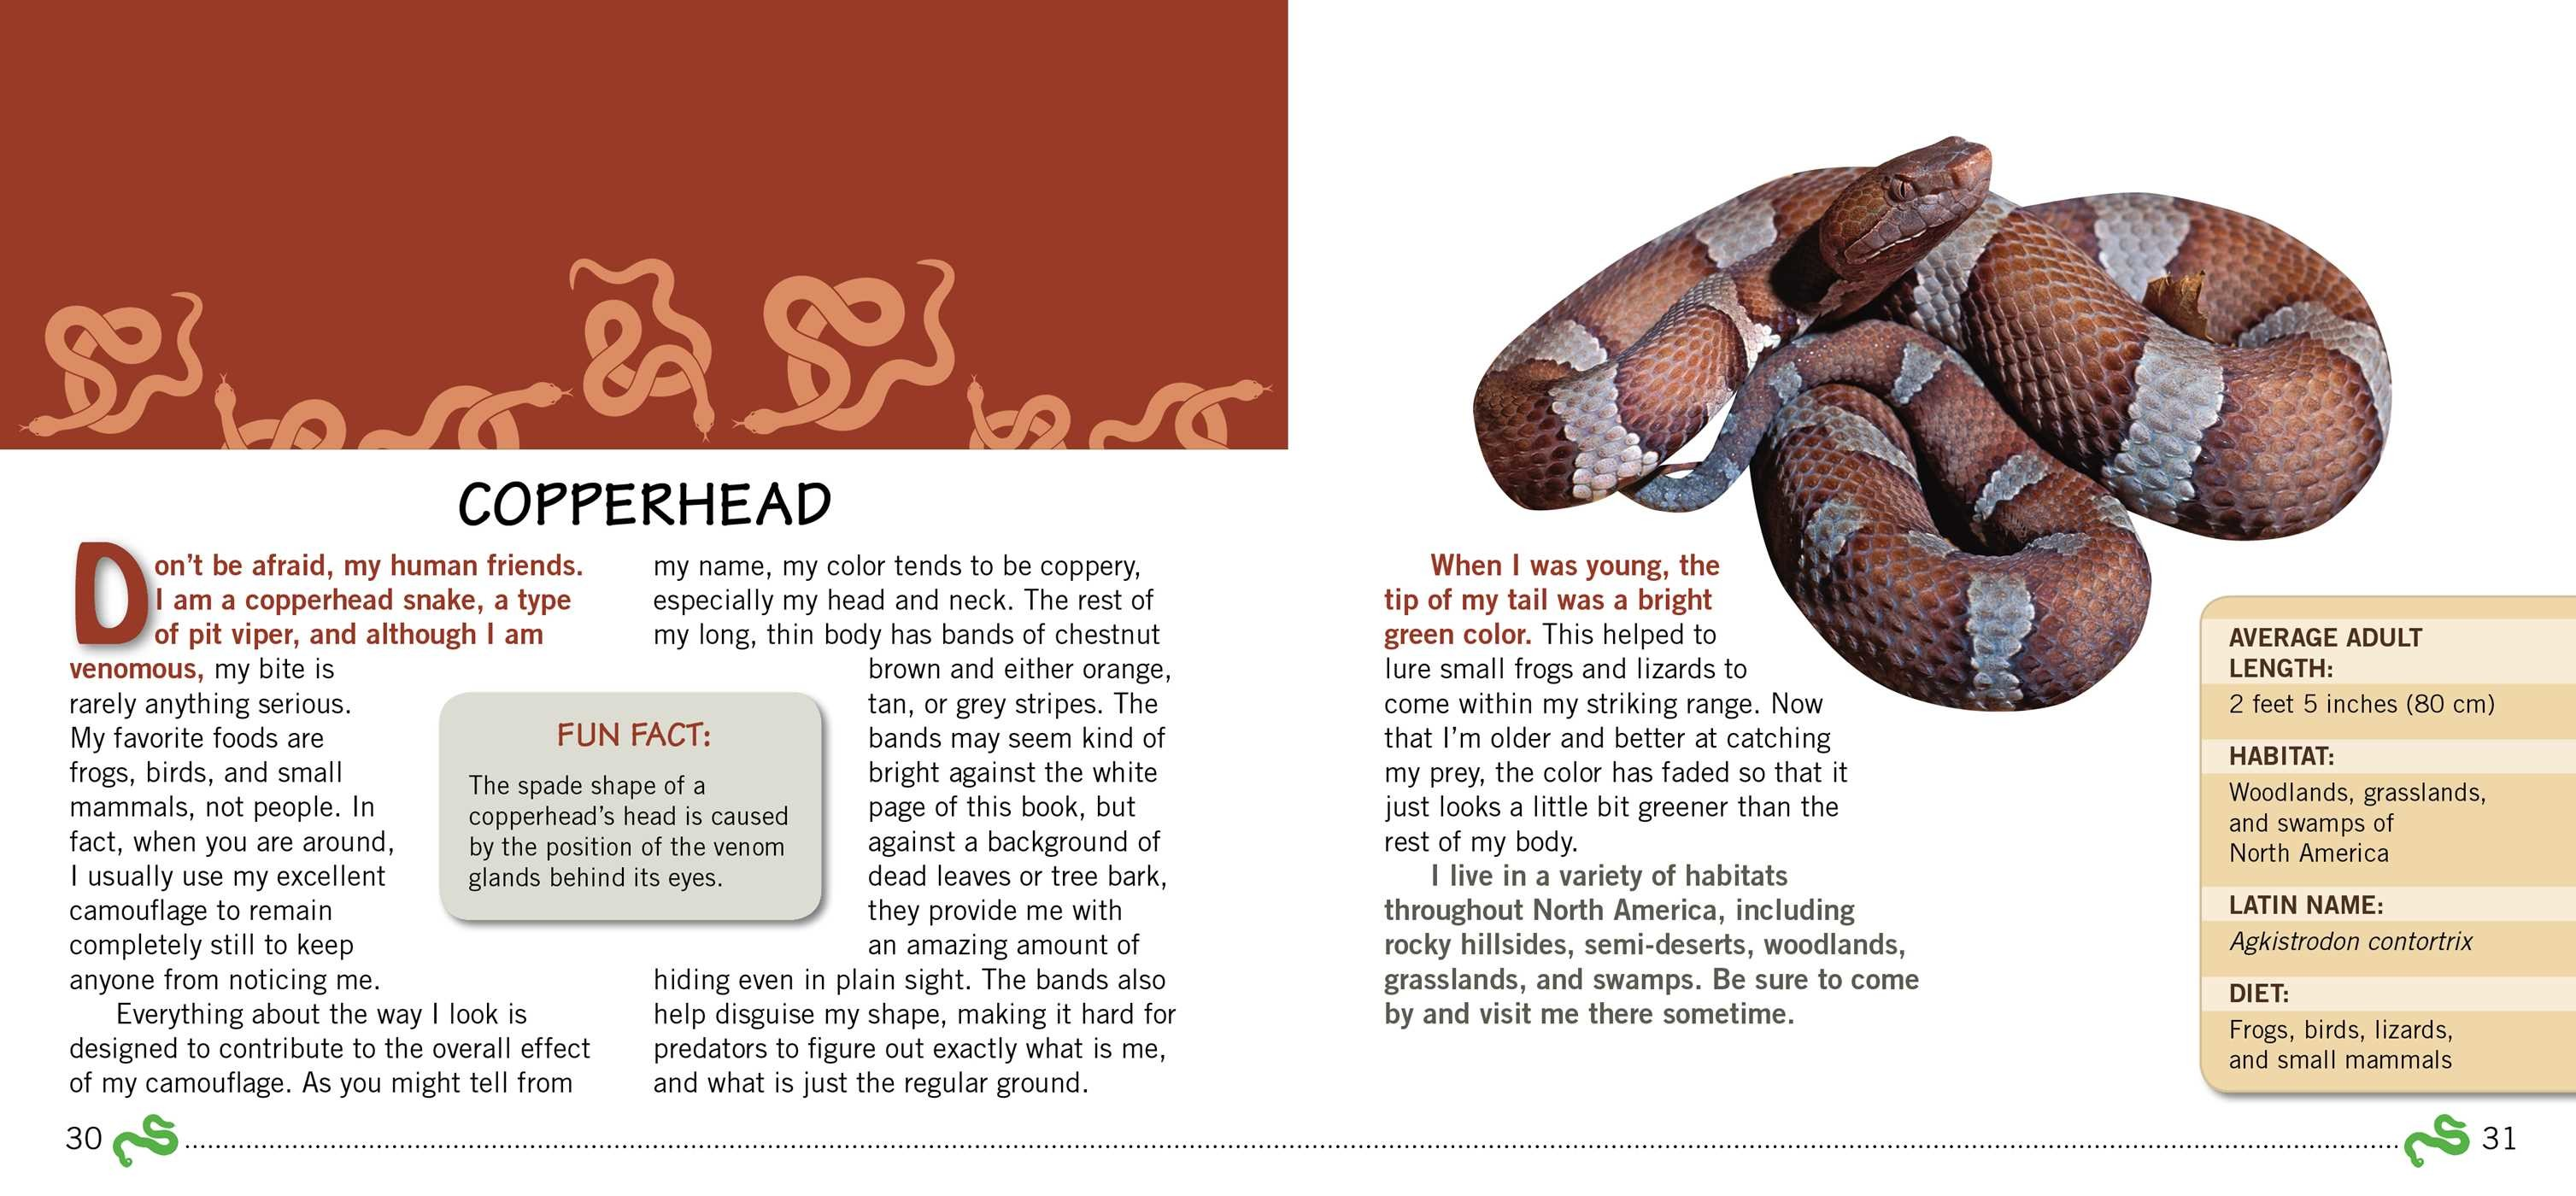 Kids Meet the Snakes | Book by Andra Serlin Abramson